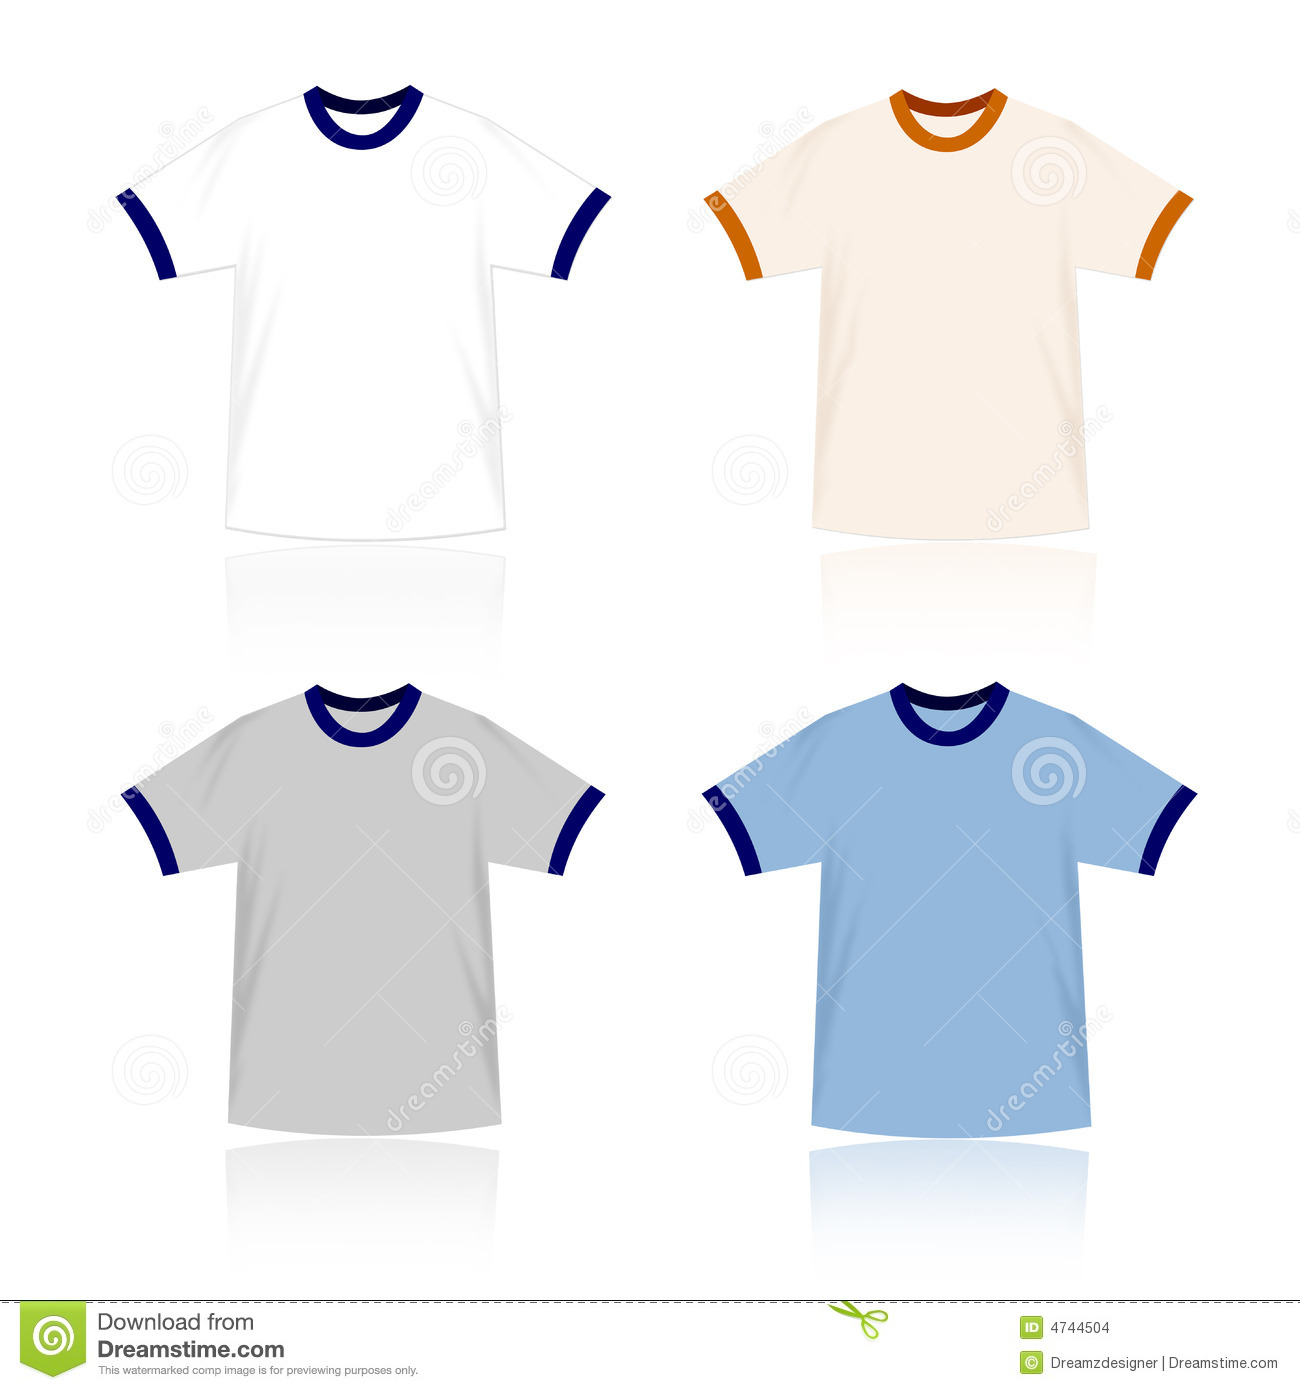 Ringer t shirts blank templates stock images image 4744504 for Website where you can design your own shirt